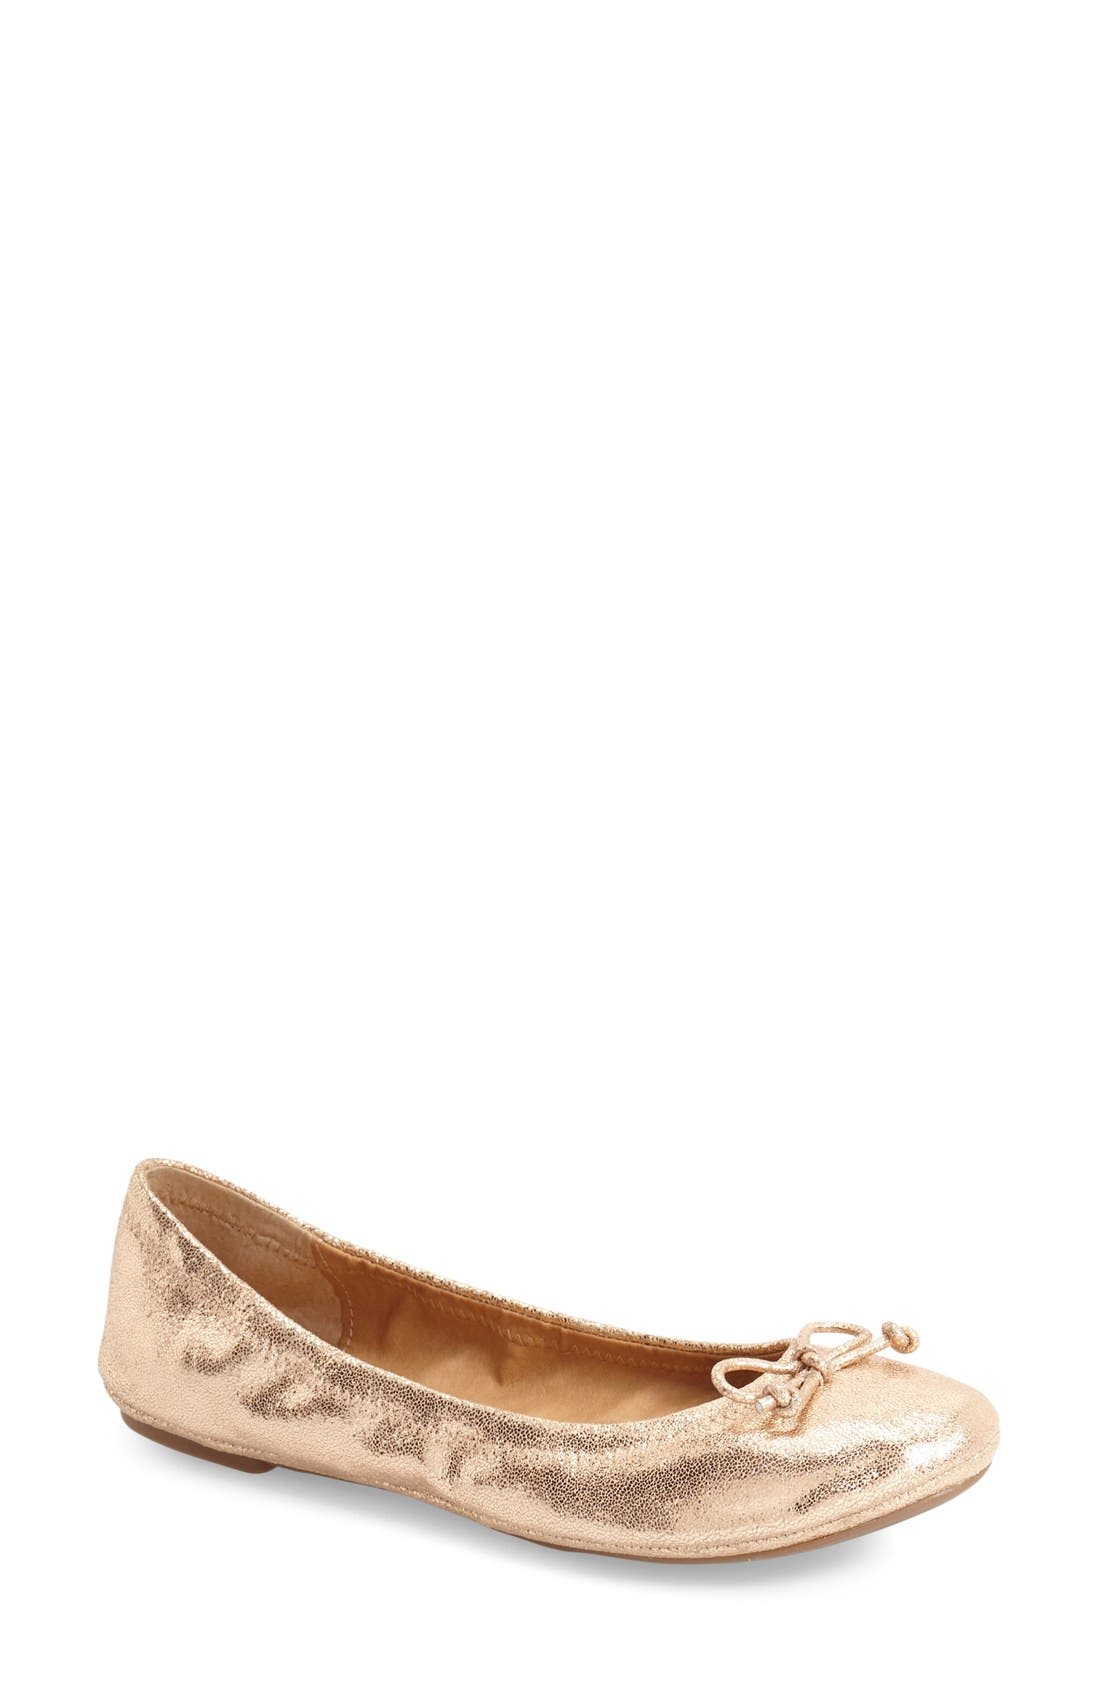 Alternate Image 1 Selected - Lucky Brand 'Eadda' Flat (Women) (Nordstrom Exclusive)